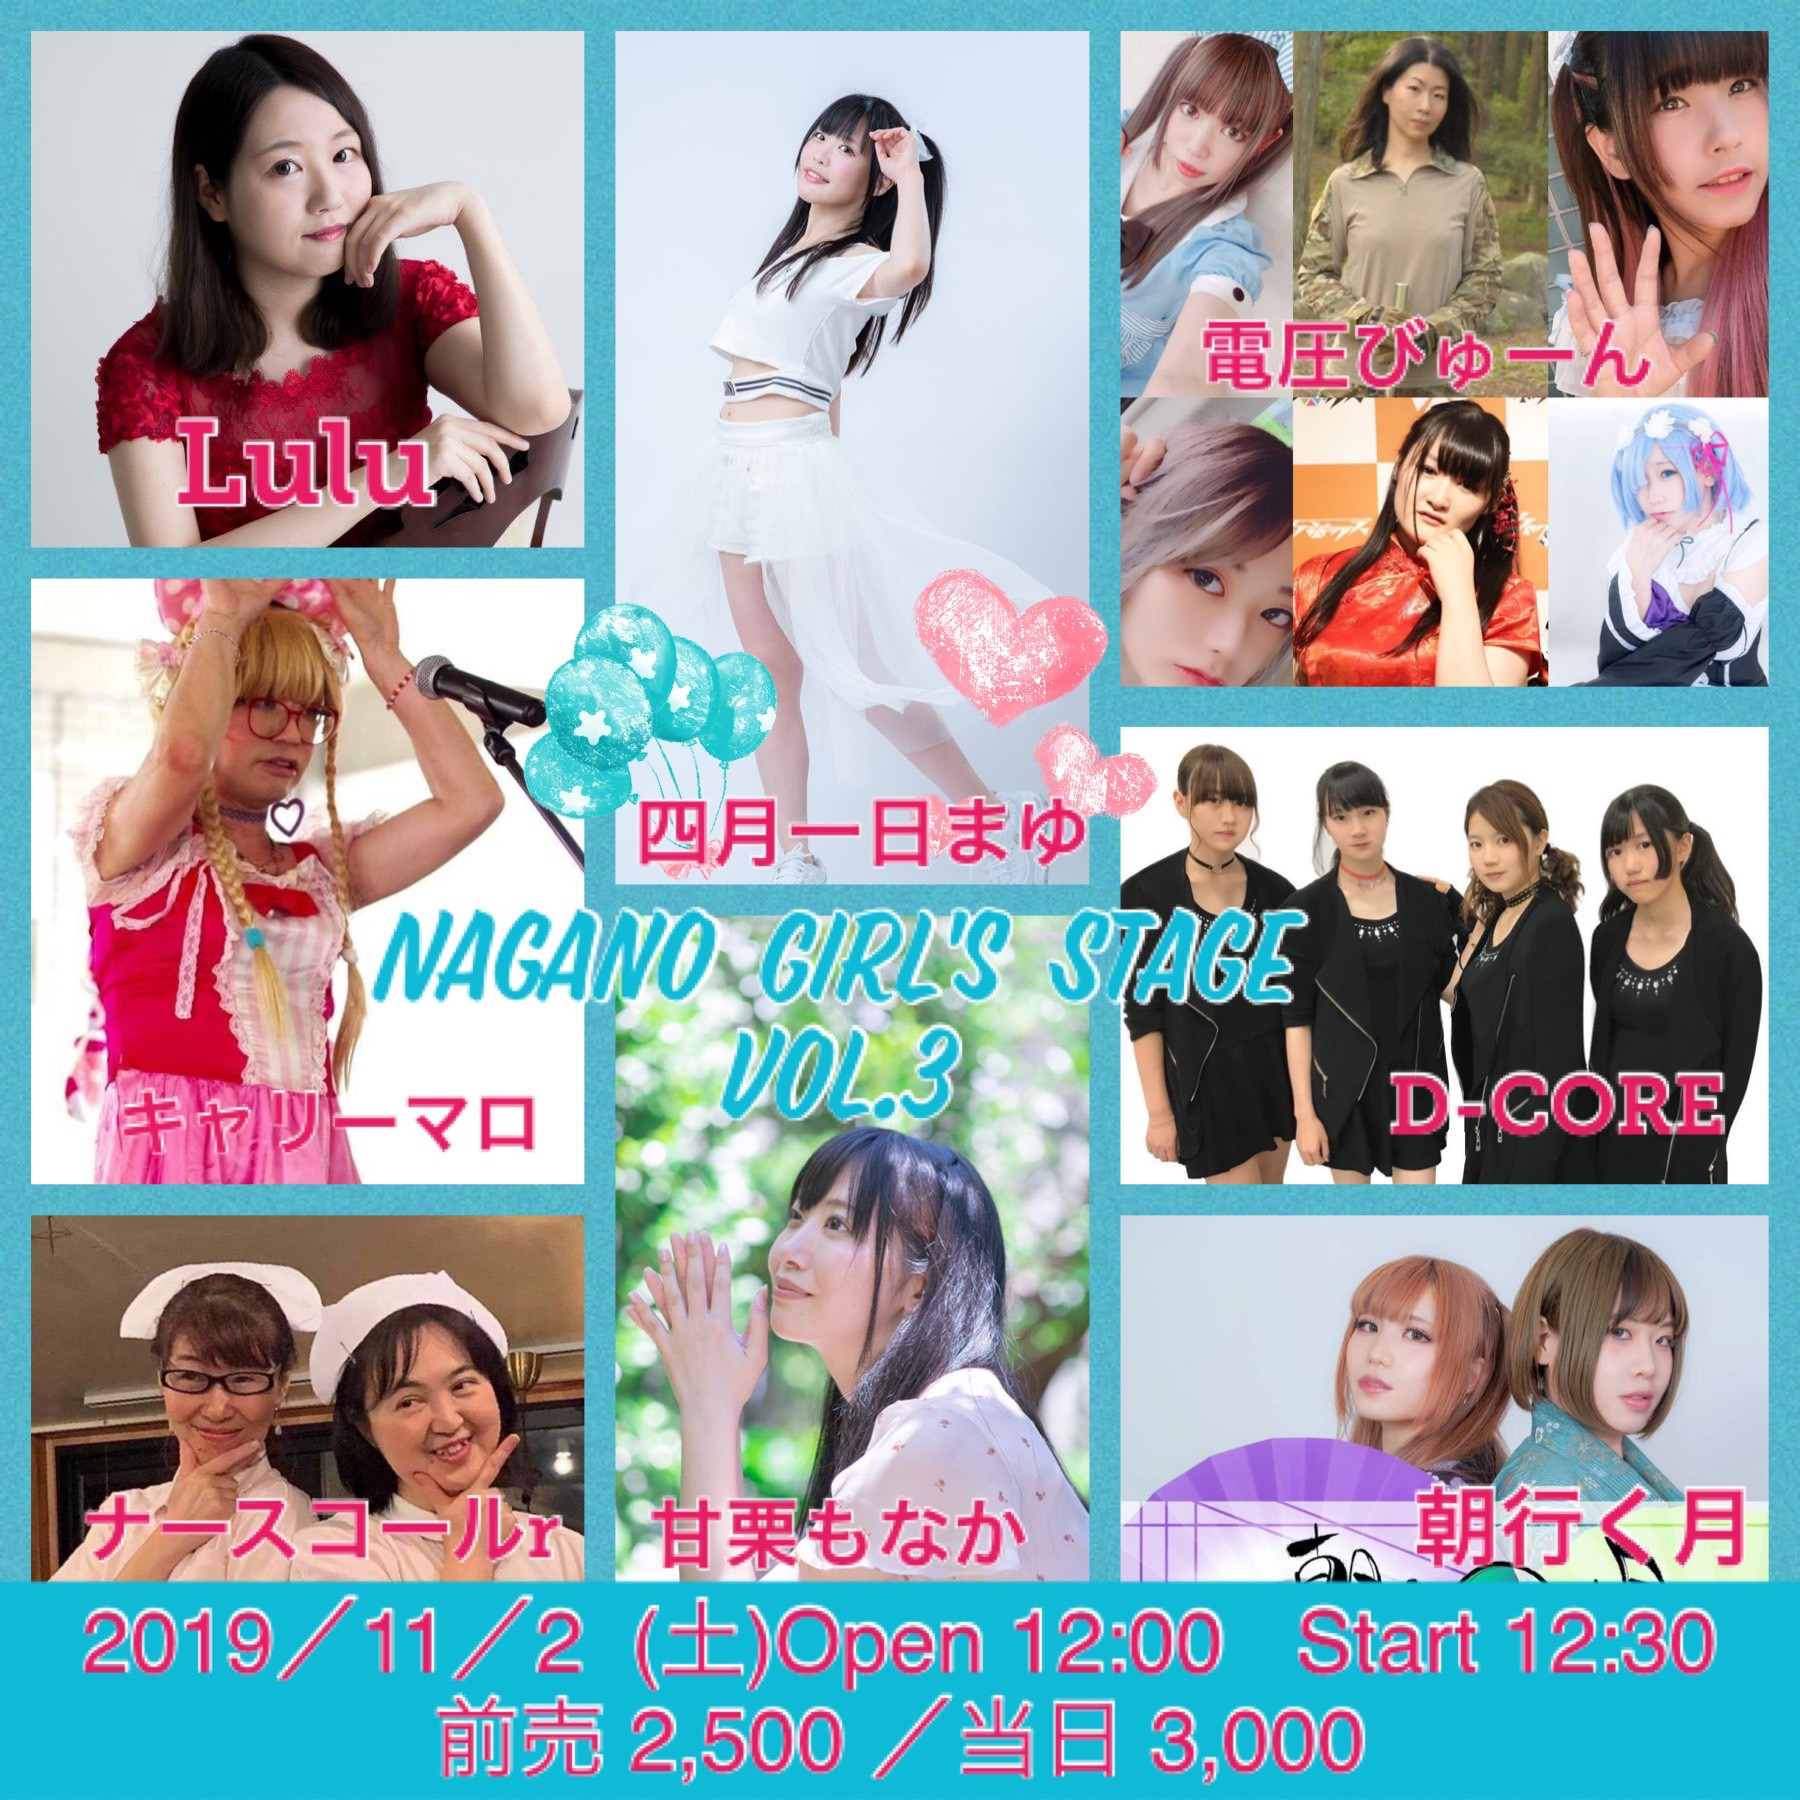 Nagano Girls Stage vol.3